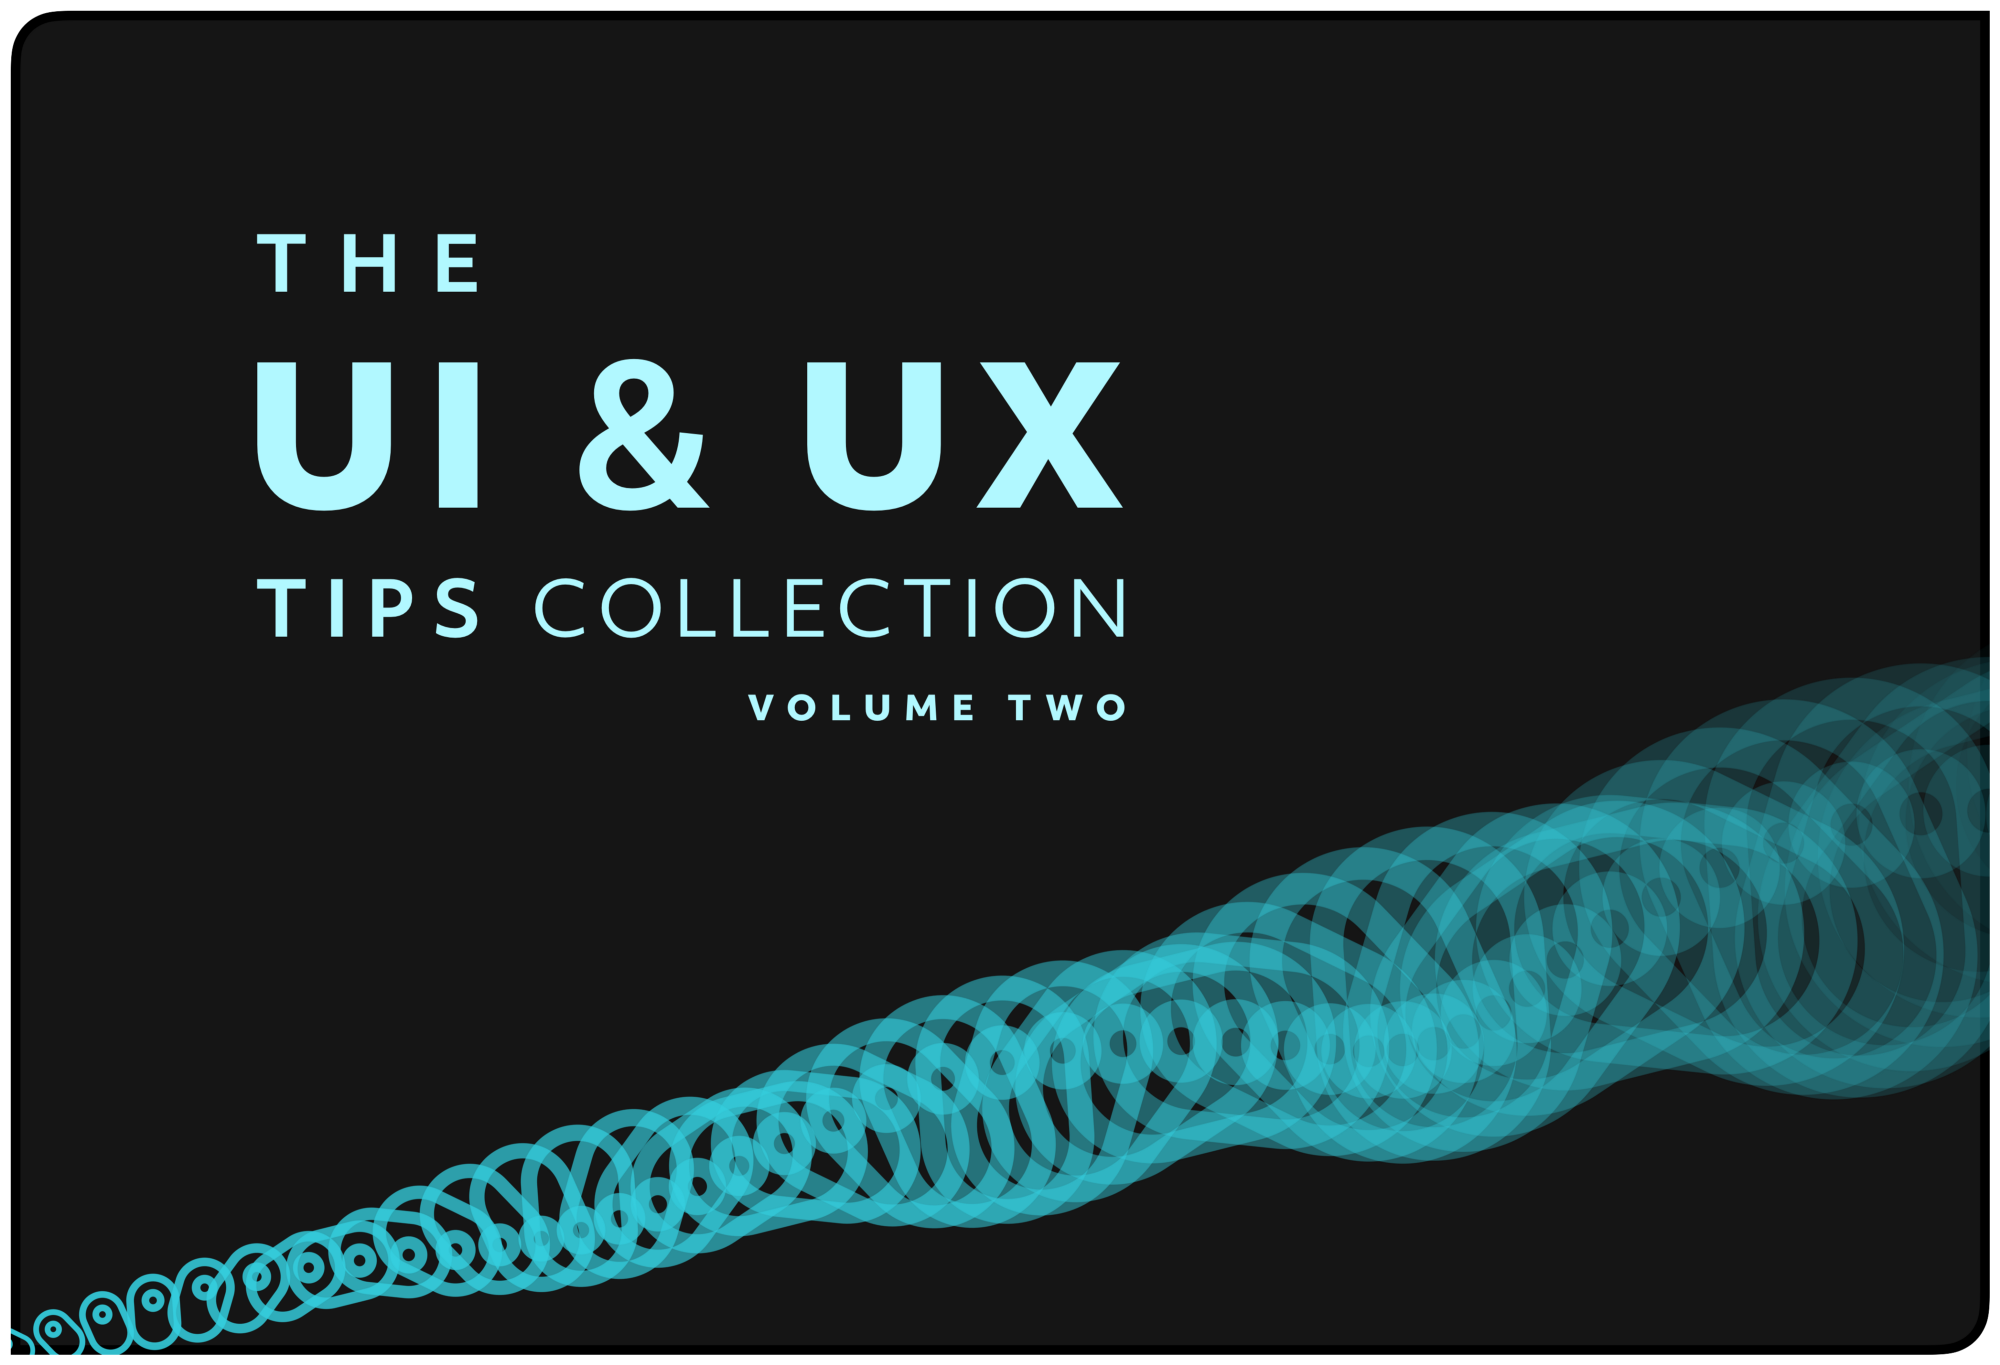 The words 'The UI & UX Tips Collection: Volume Two' in blue against a black background.